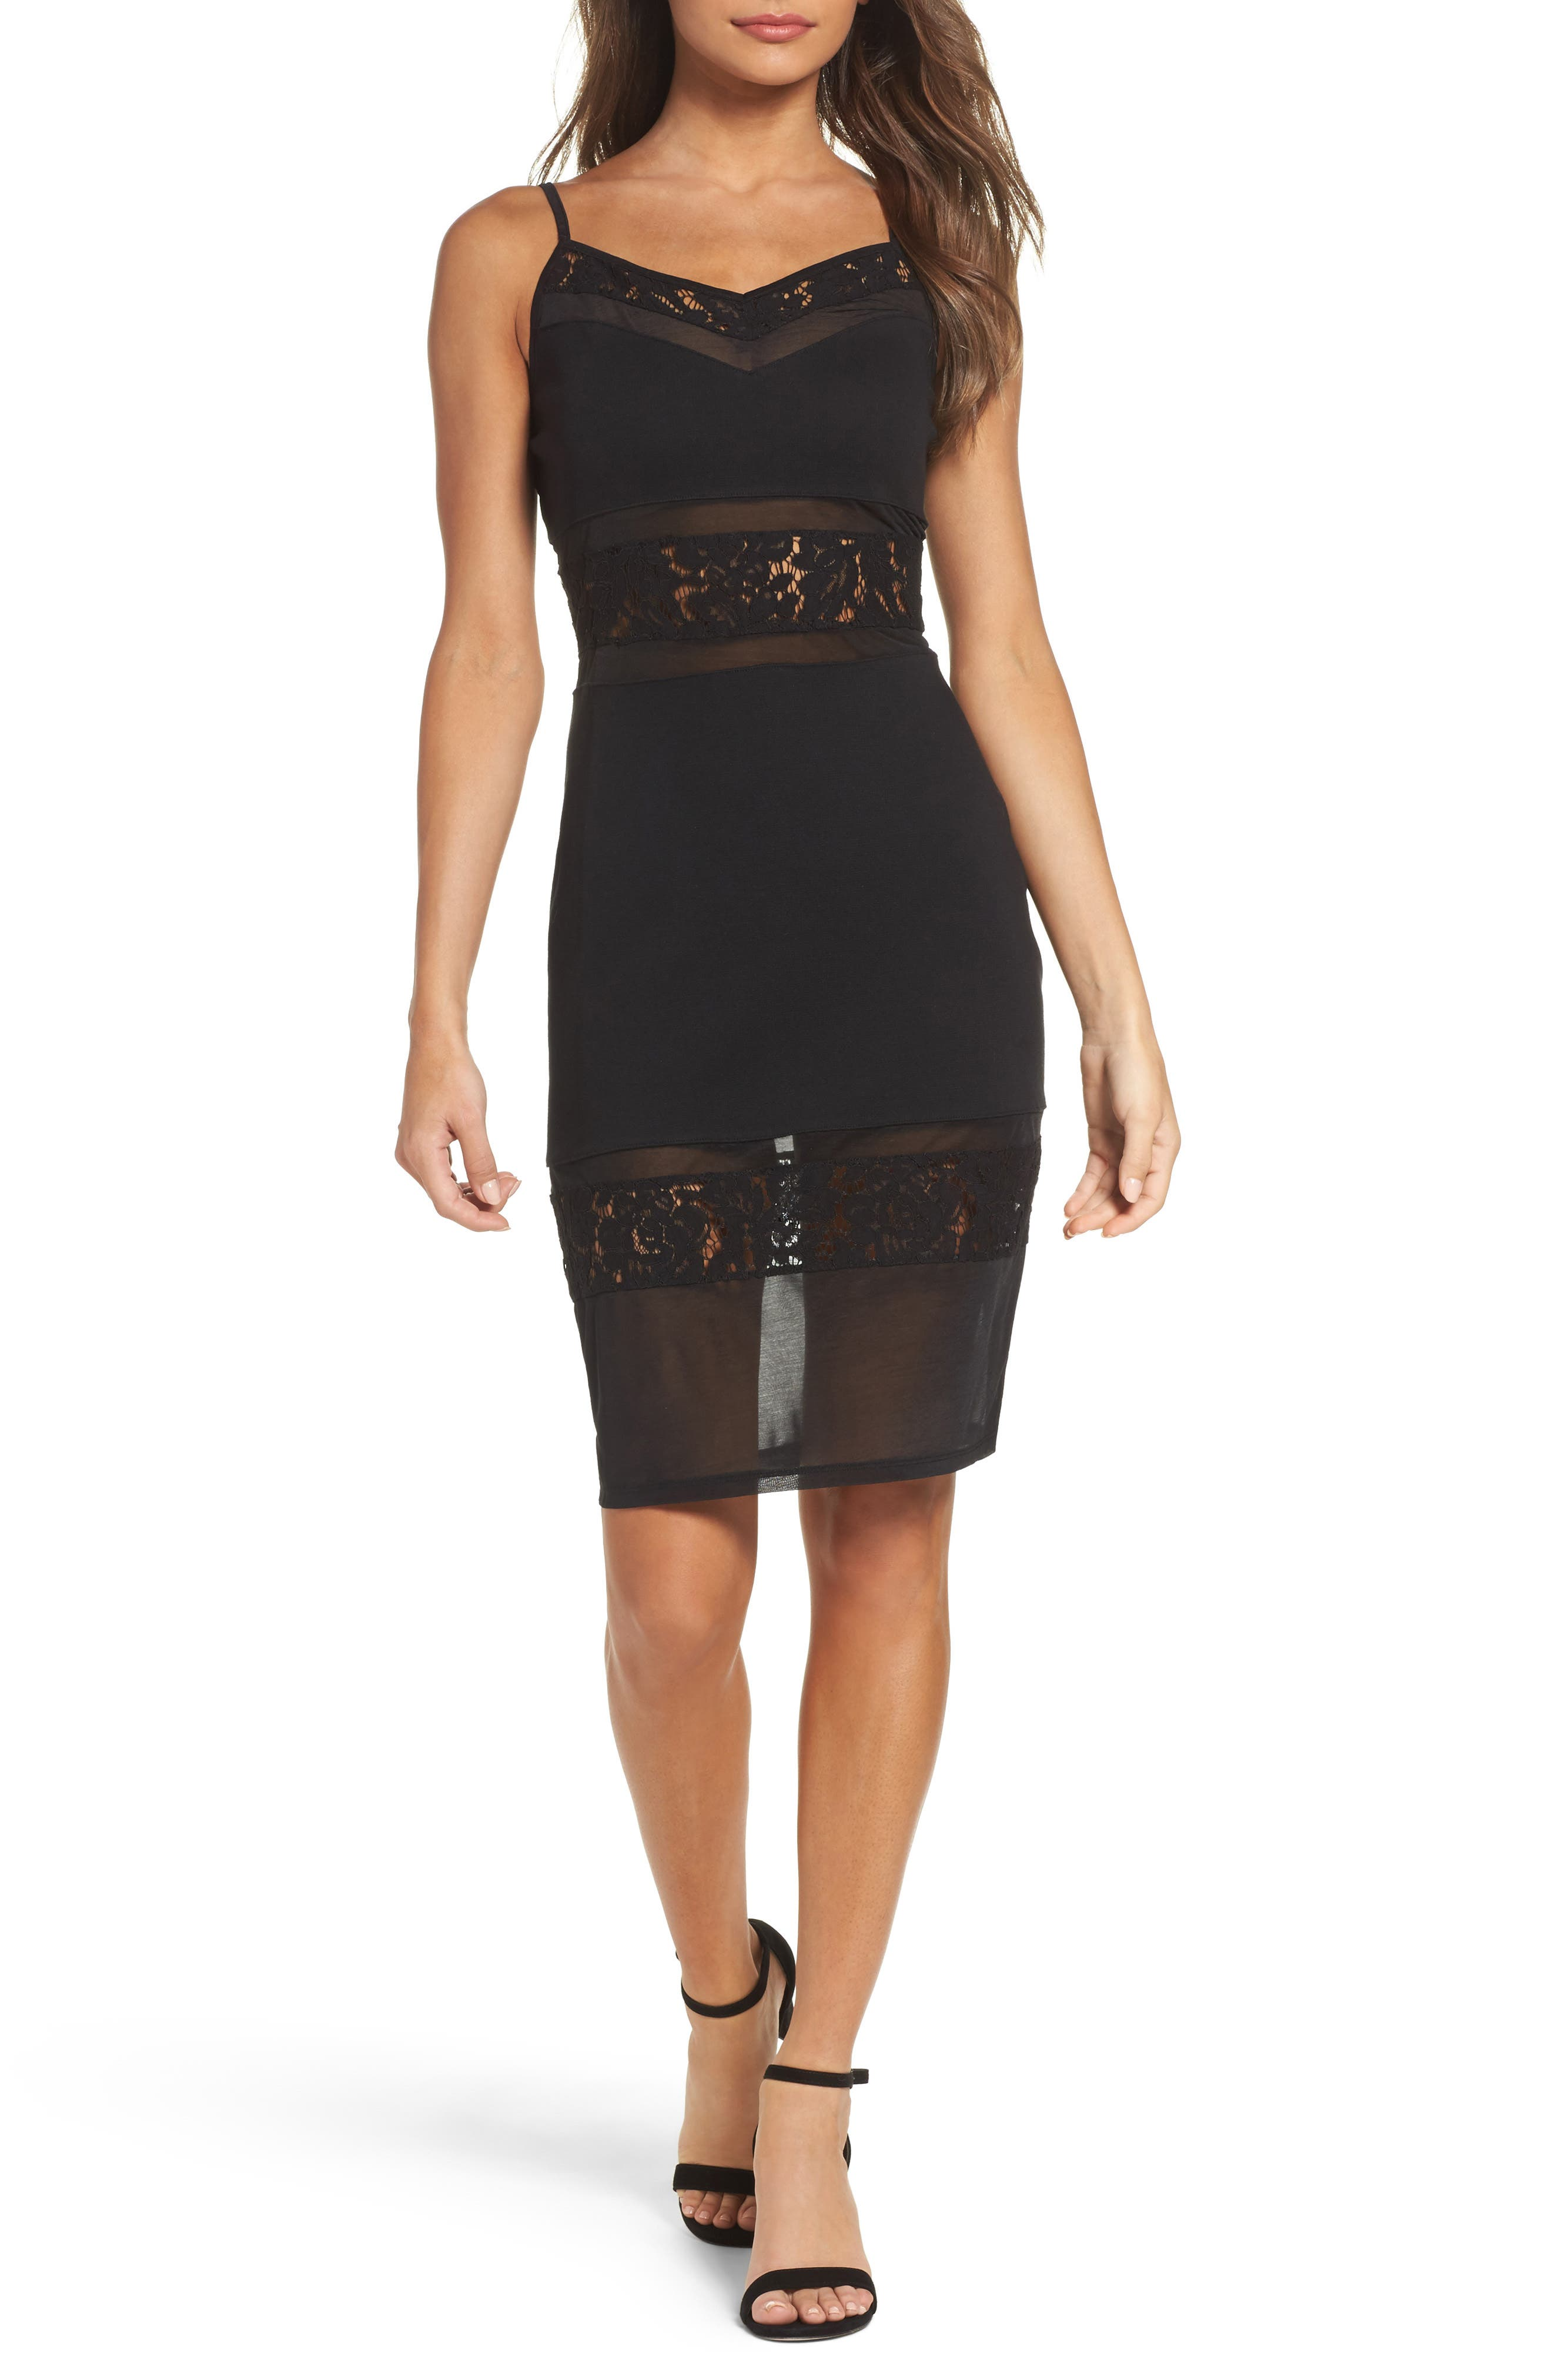 Lucky Layer Embroidered Mesh Sheath Dress,                             Main thumbnail 1, color,                             001